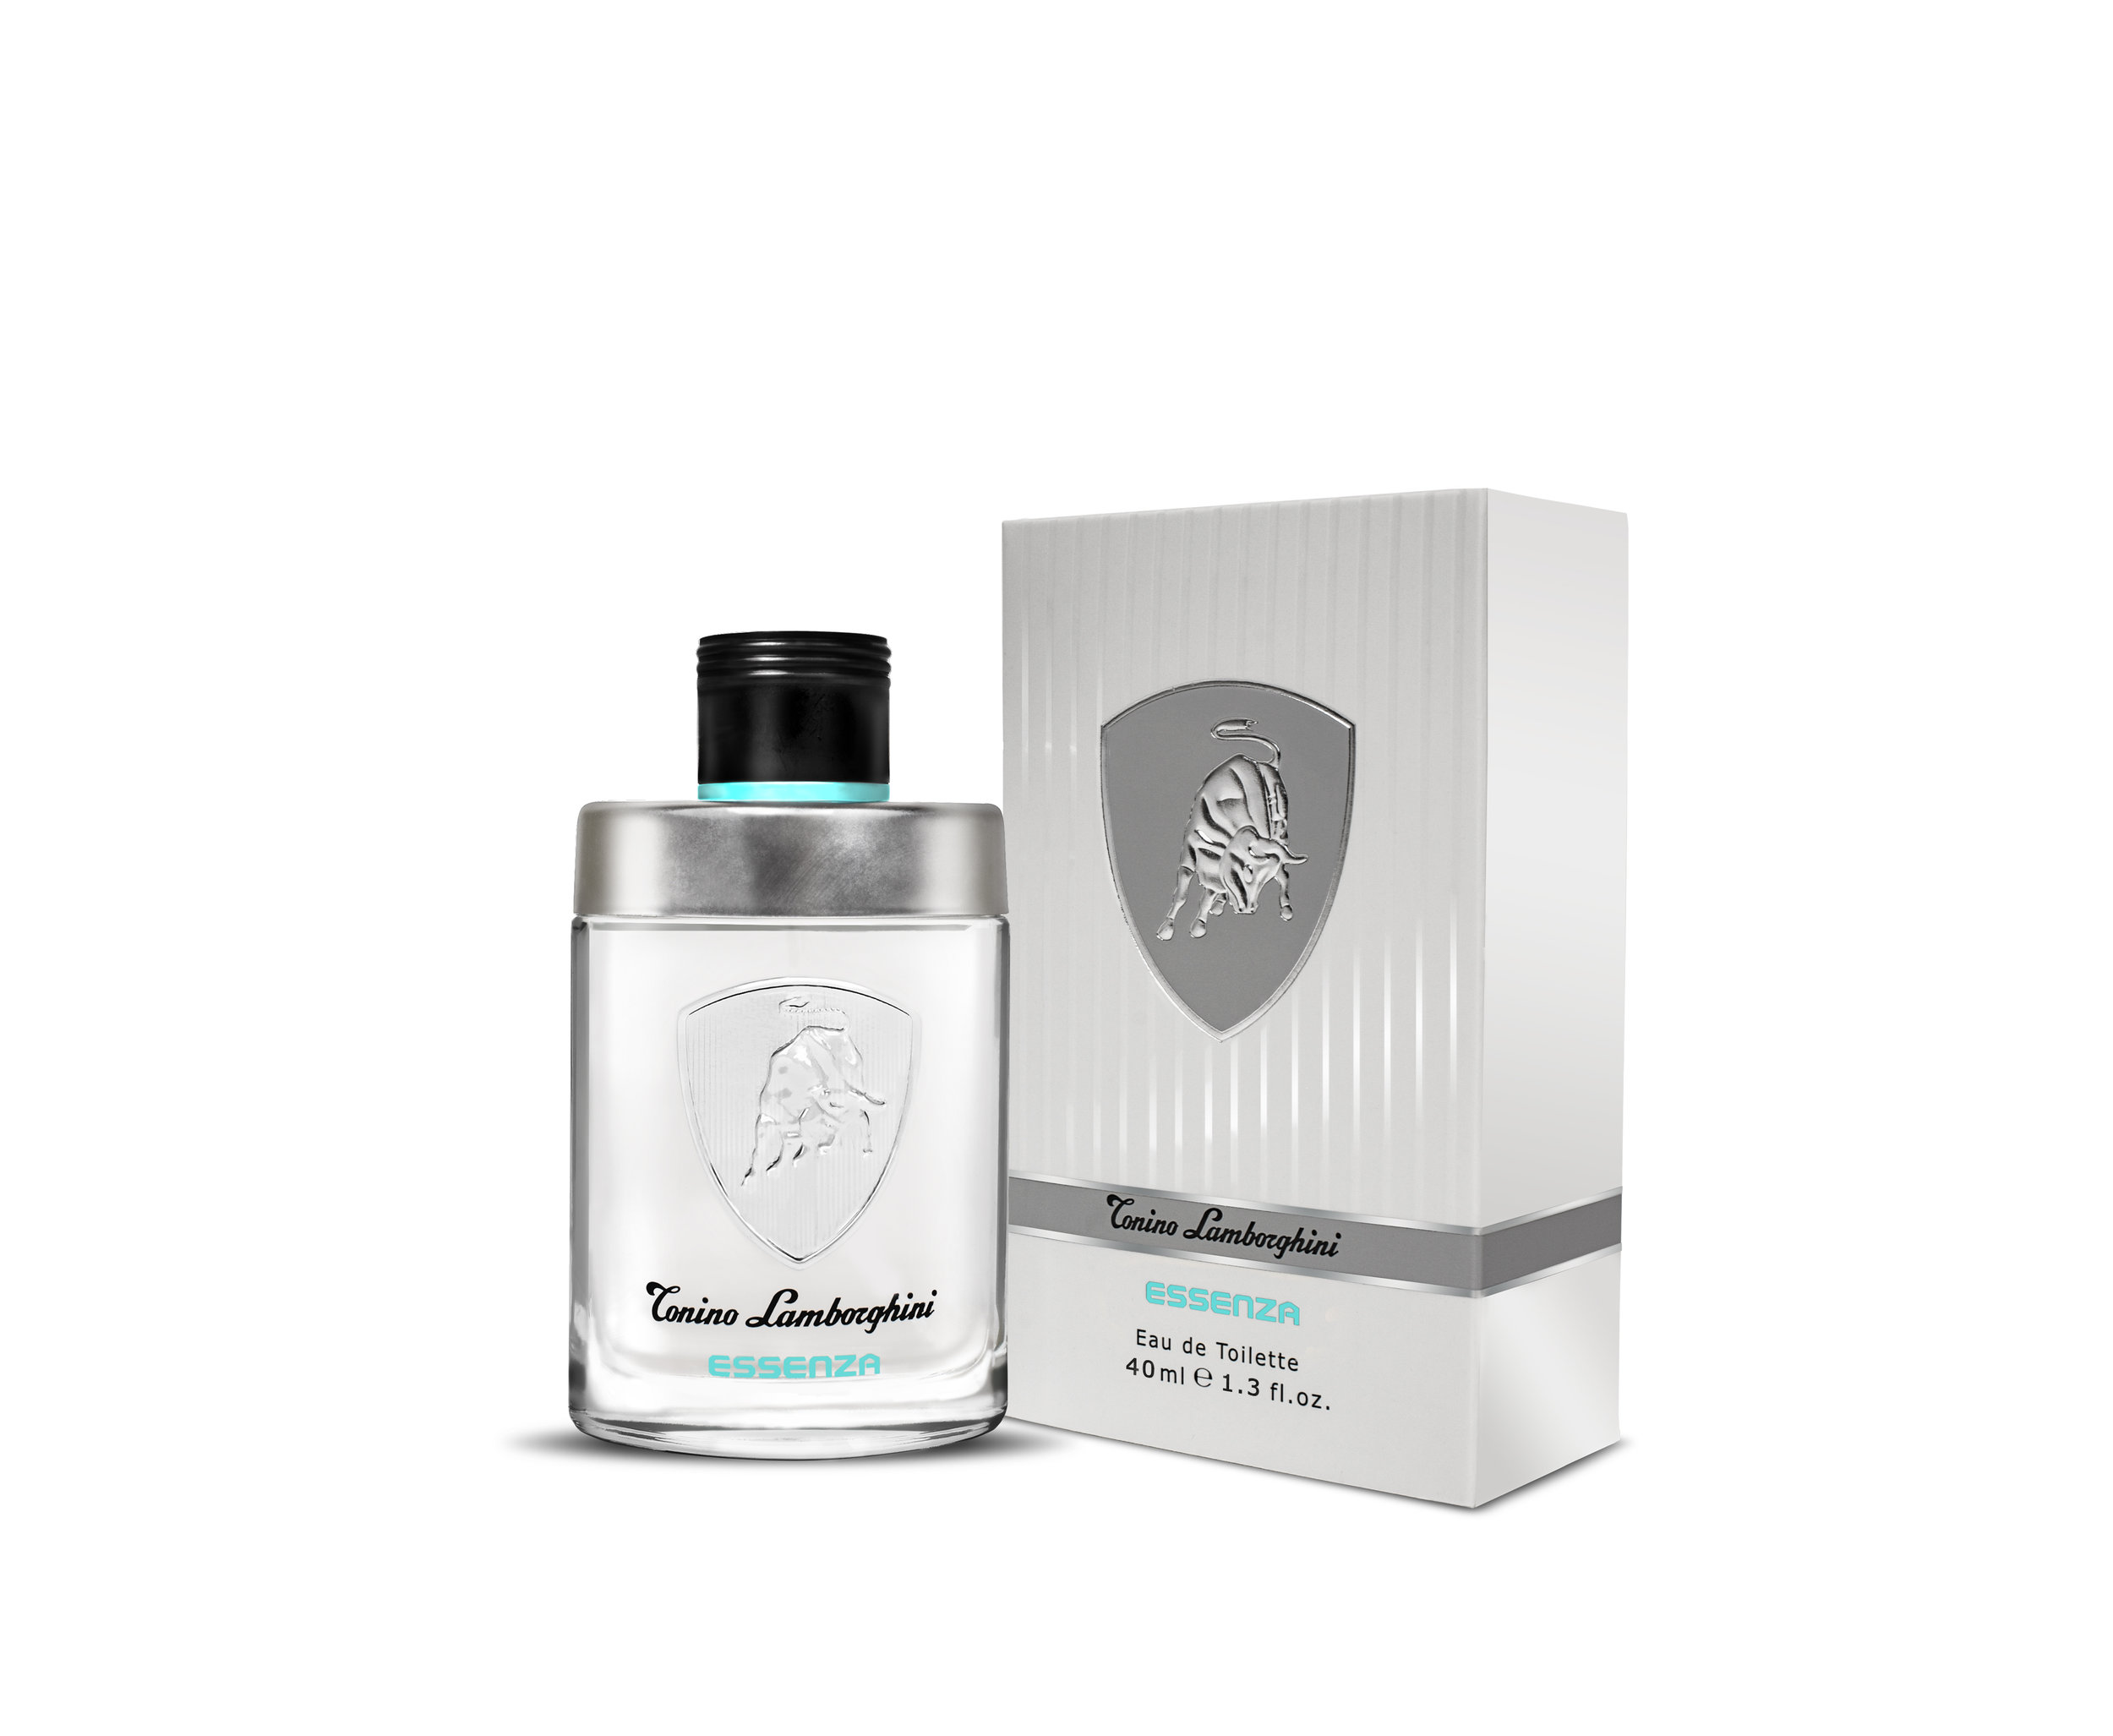 Essenza_lamborghini_fragrance_40ml_edt.jpg